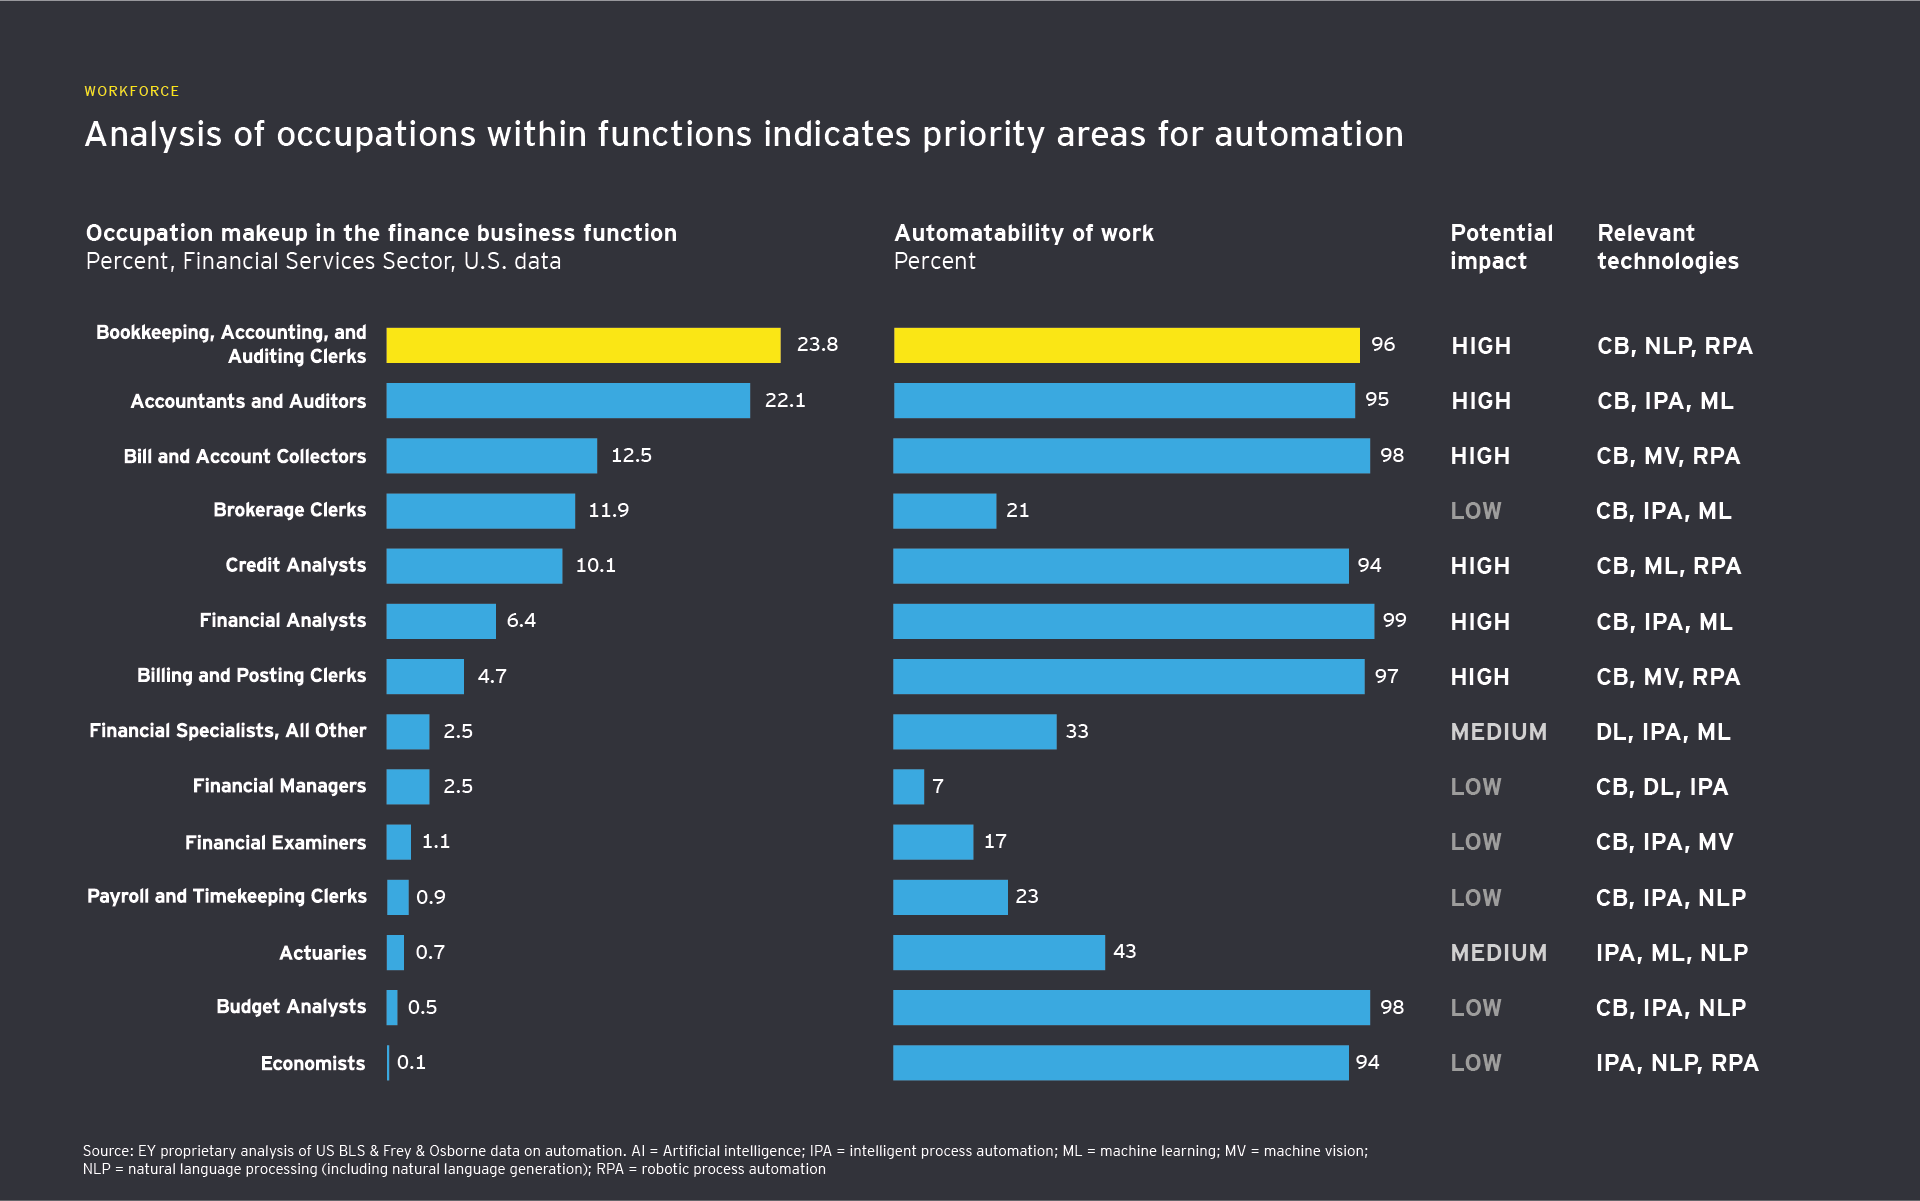 Priority areas for automation in the finance function